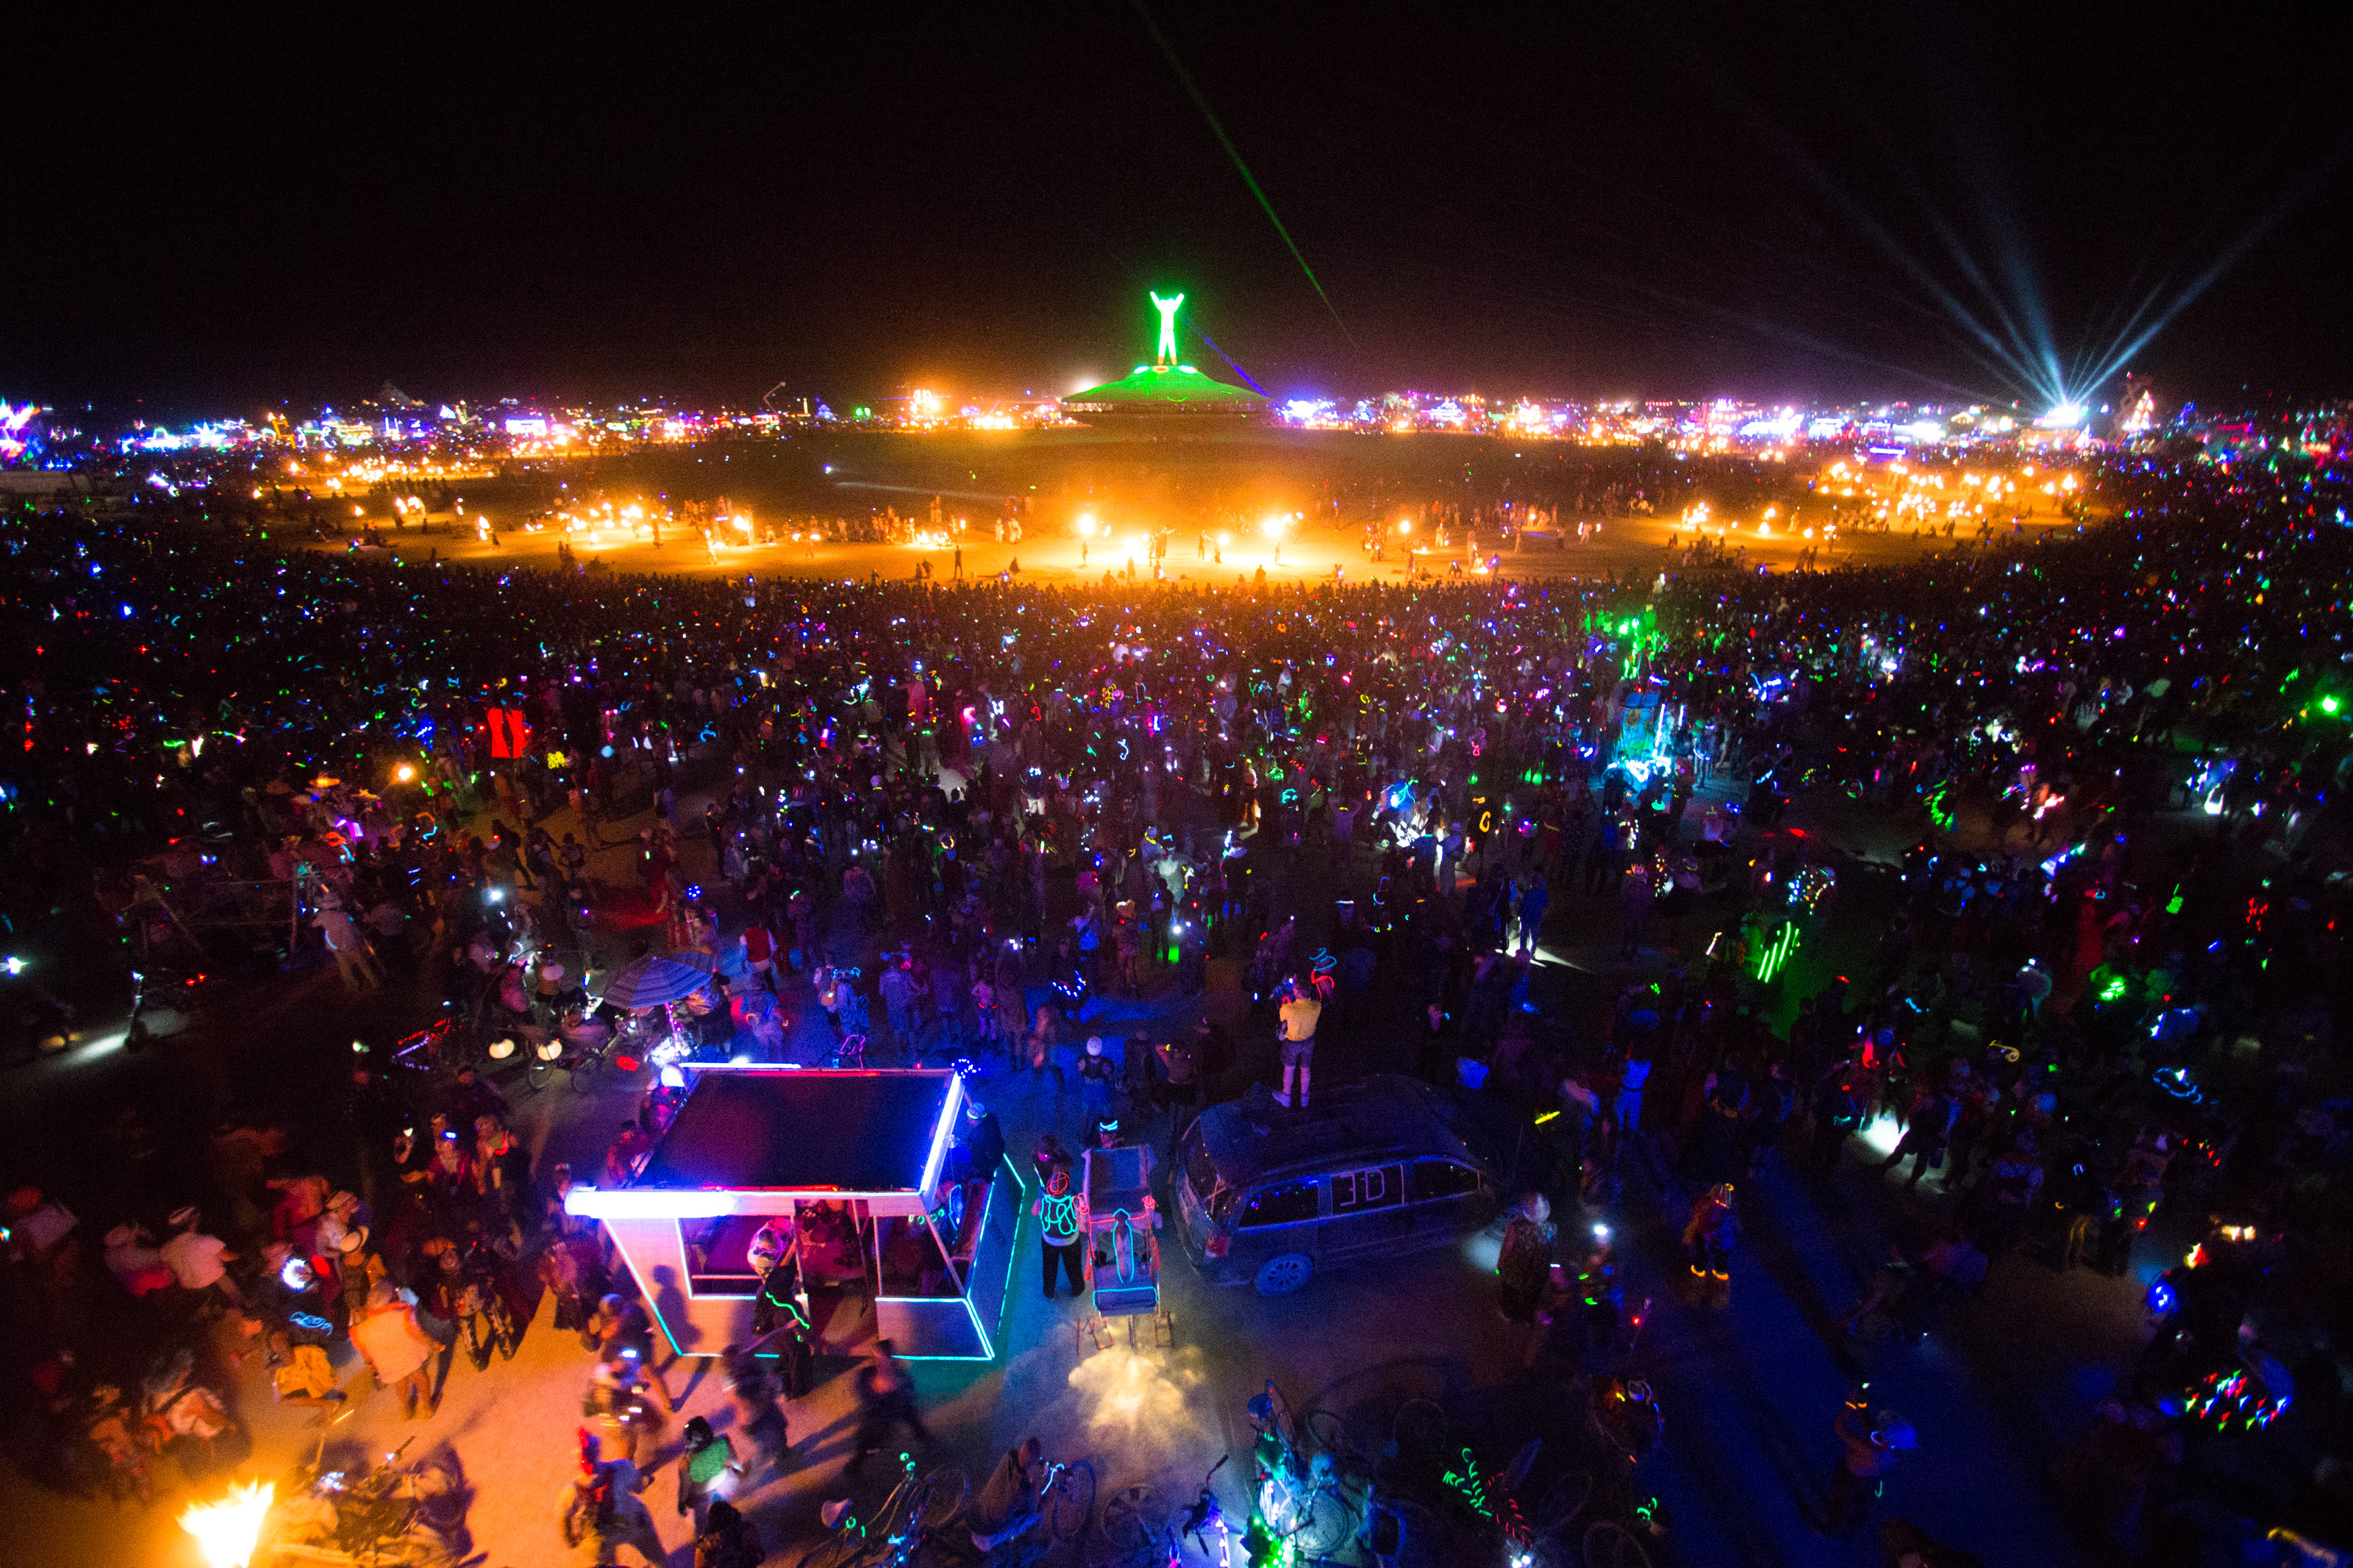 Burning man camp at night